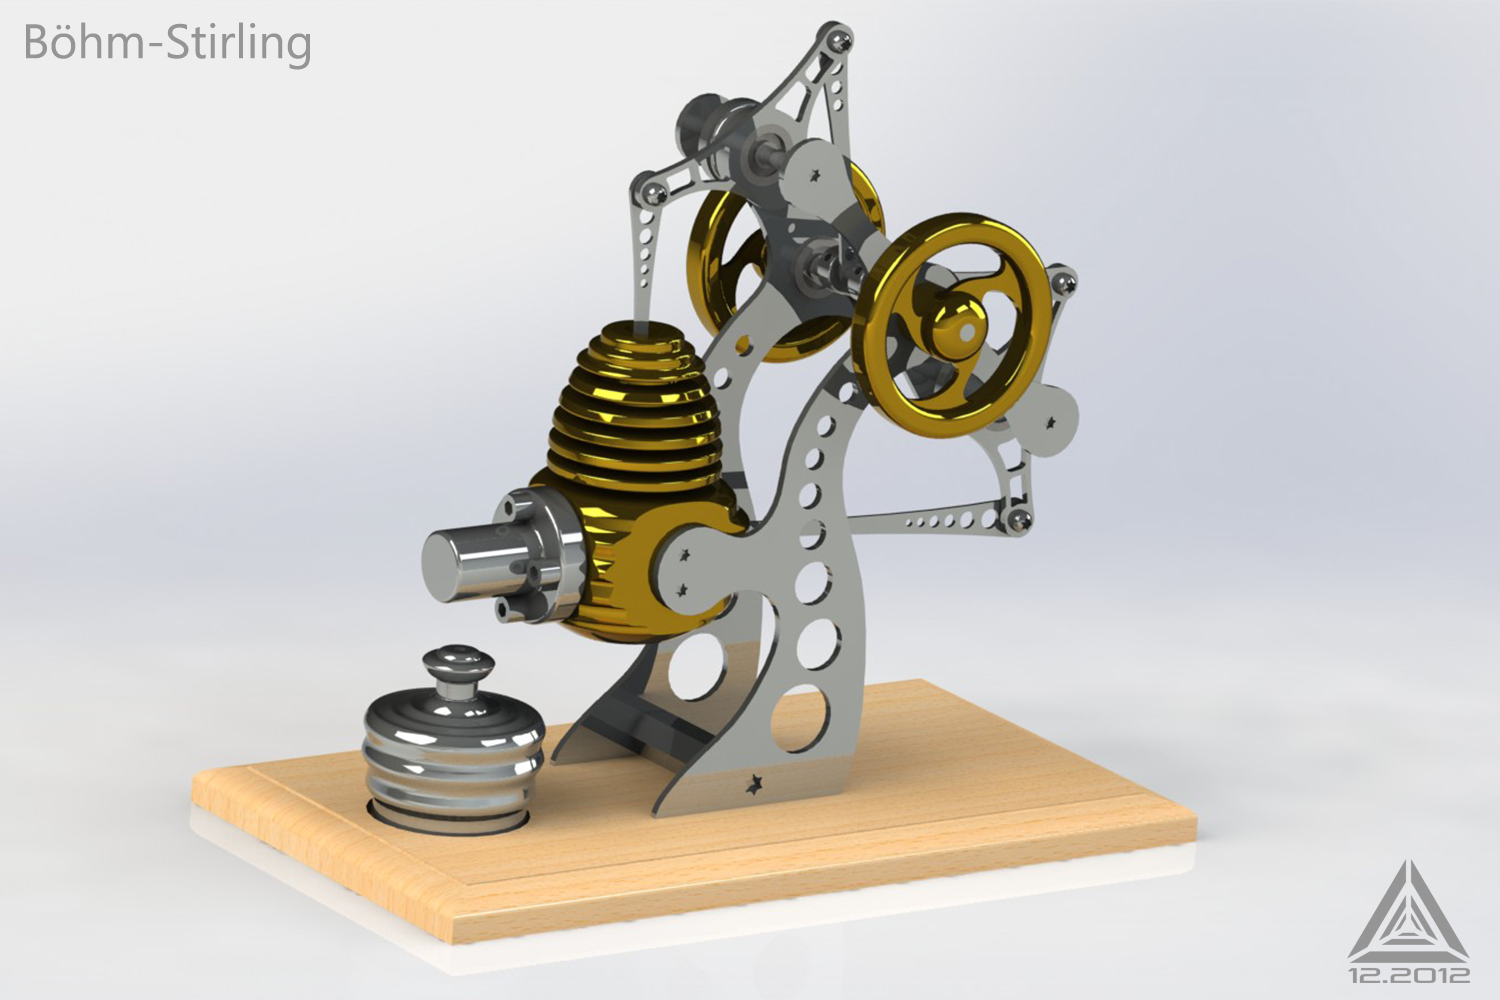 3d stirling engine by icosaedri on deviantart for Decor 9 stirling